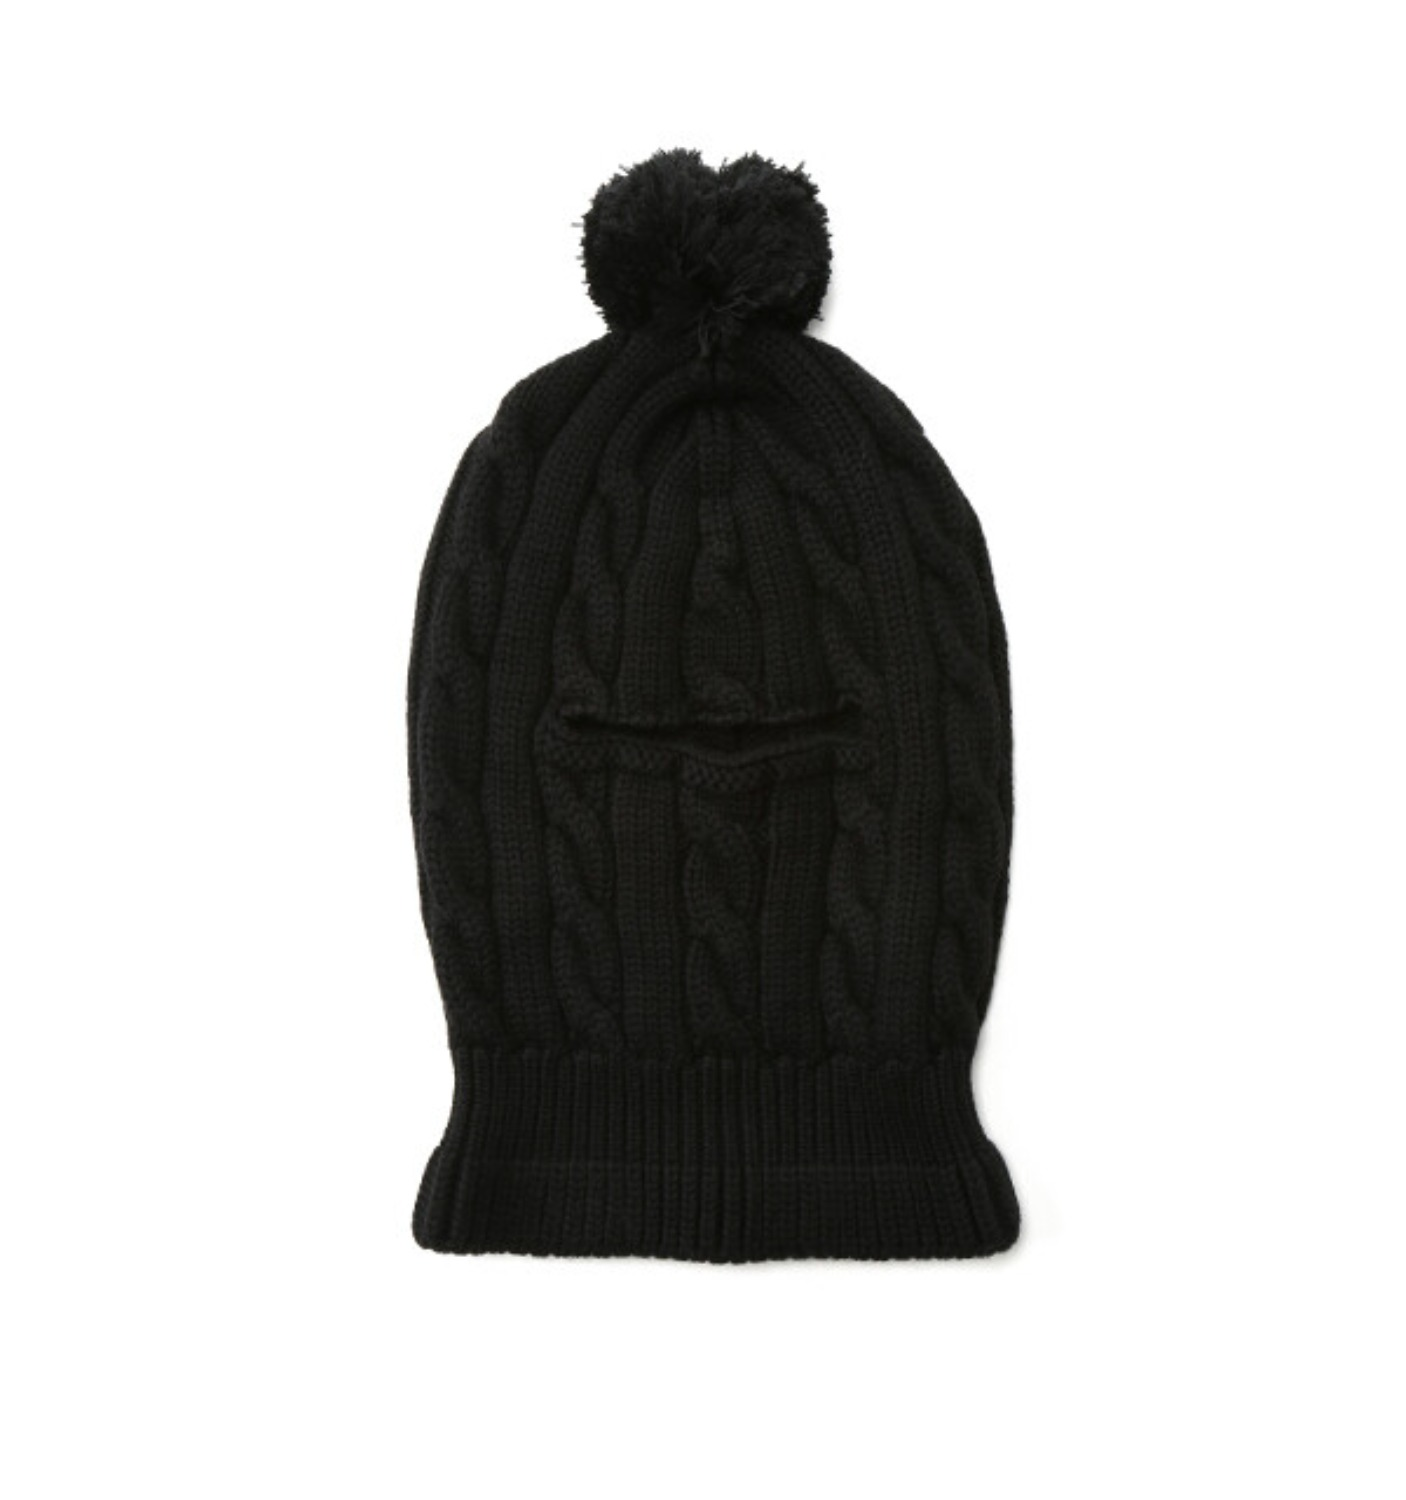 POM POM BEANIE BLACK WOOL CABLE KNIT